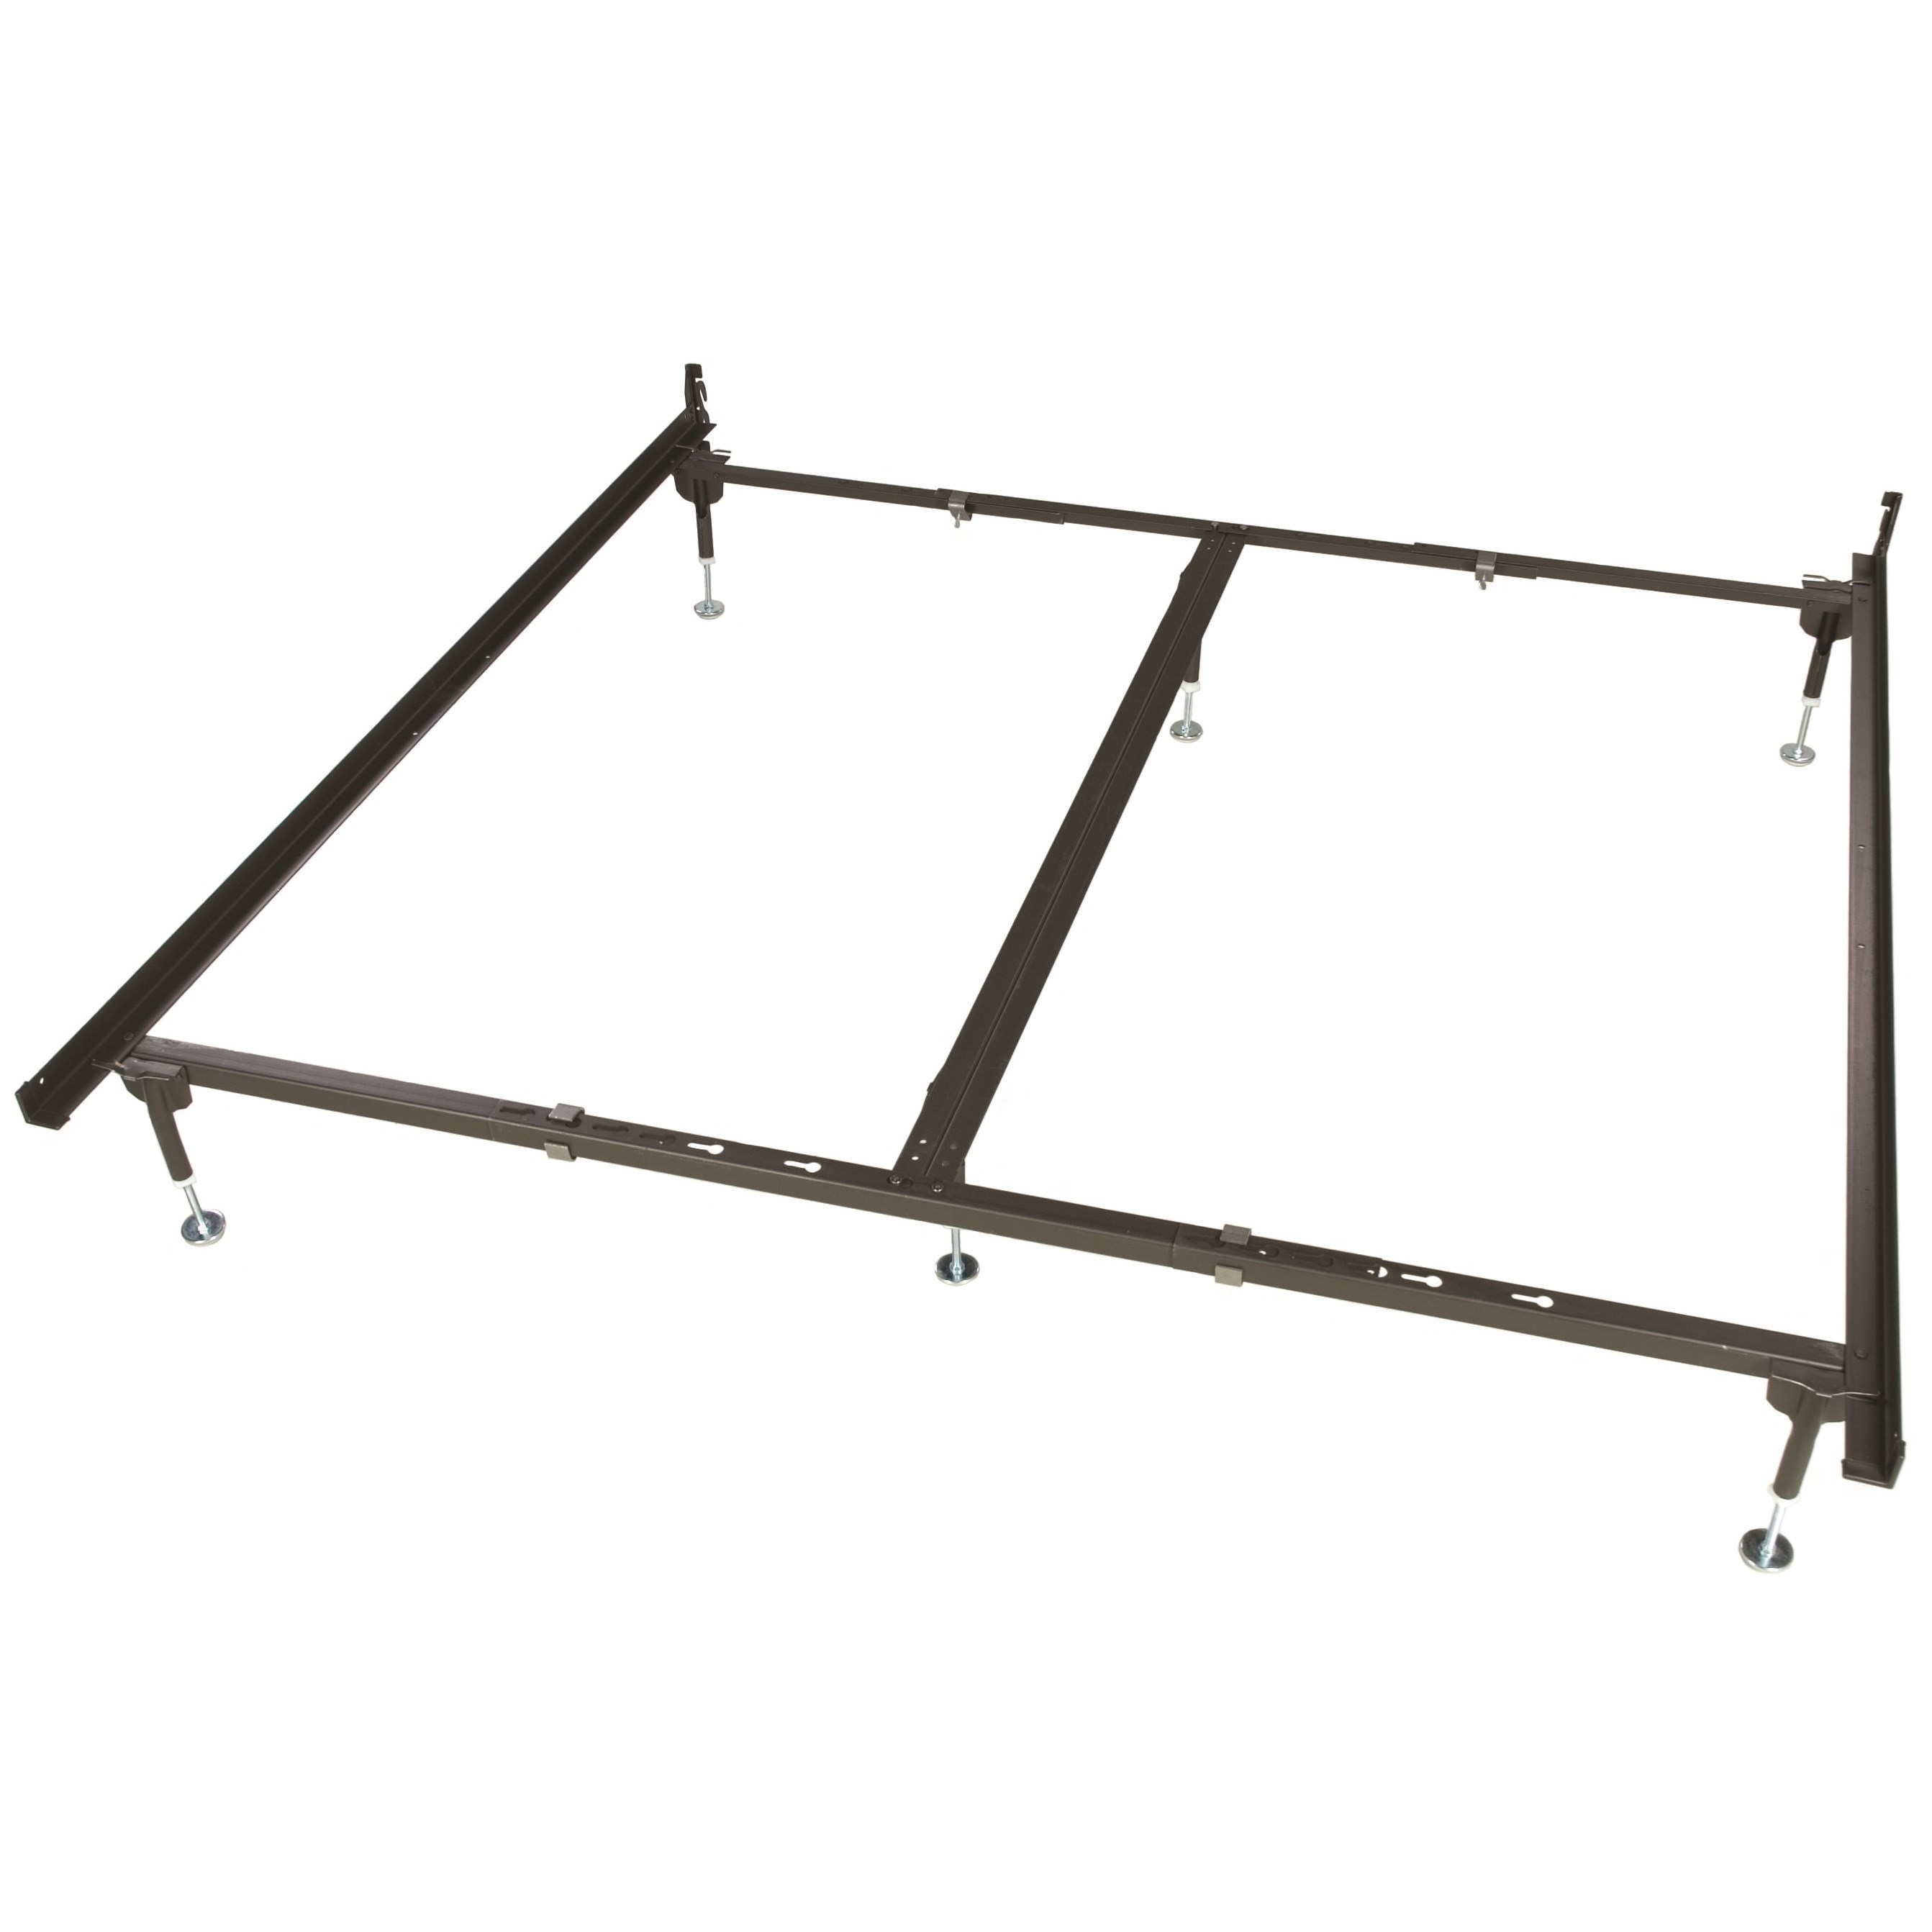 Deluxe Hook In Frames Qn/King/CK Bed Frame for Hook-In Headboard by Glideaway at Beds N Stuff